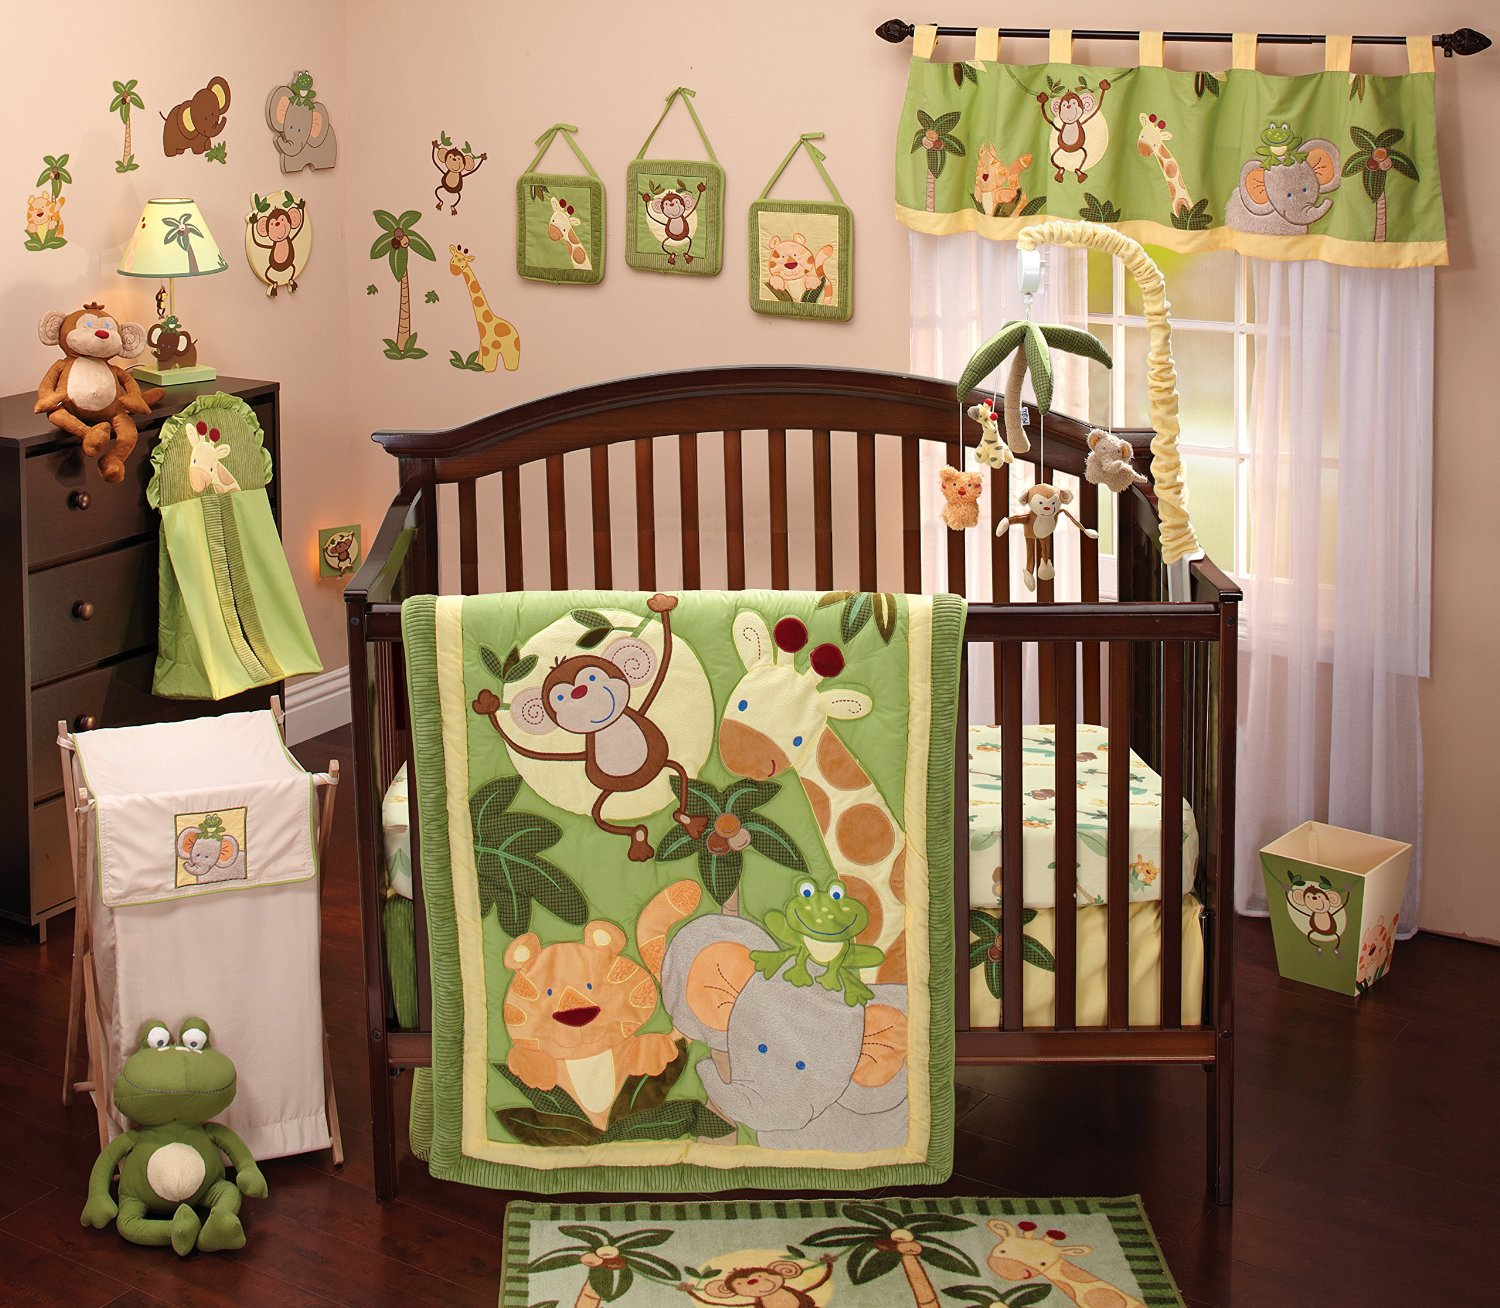 The Right On Mom Vegan Mom Blog Nursery Decorating